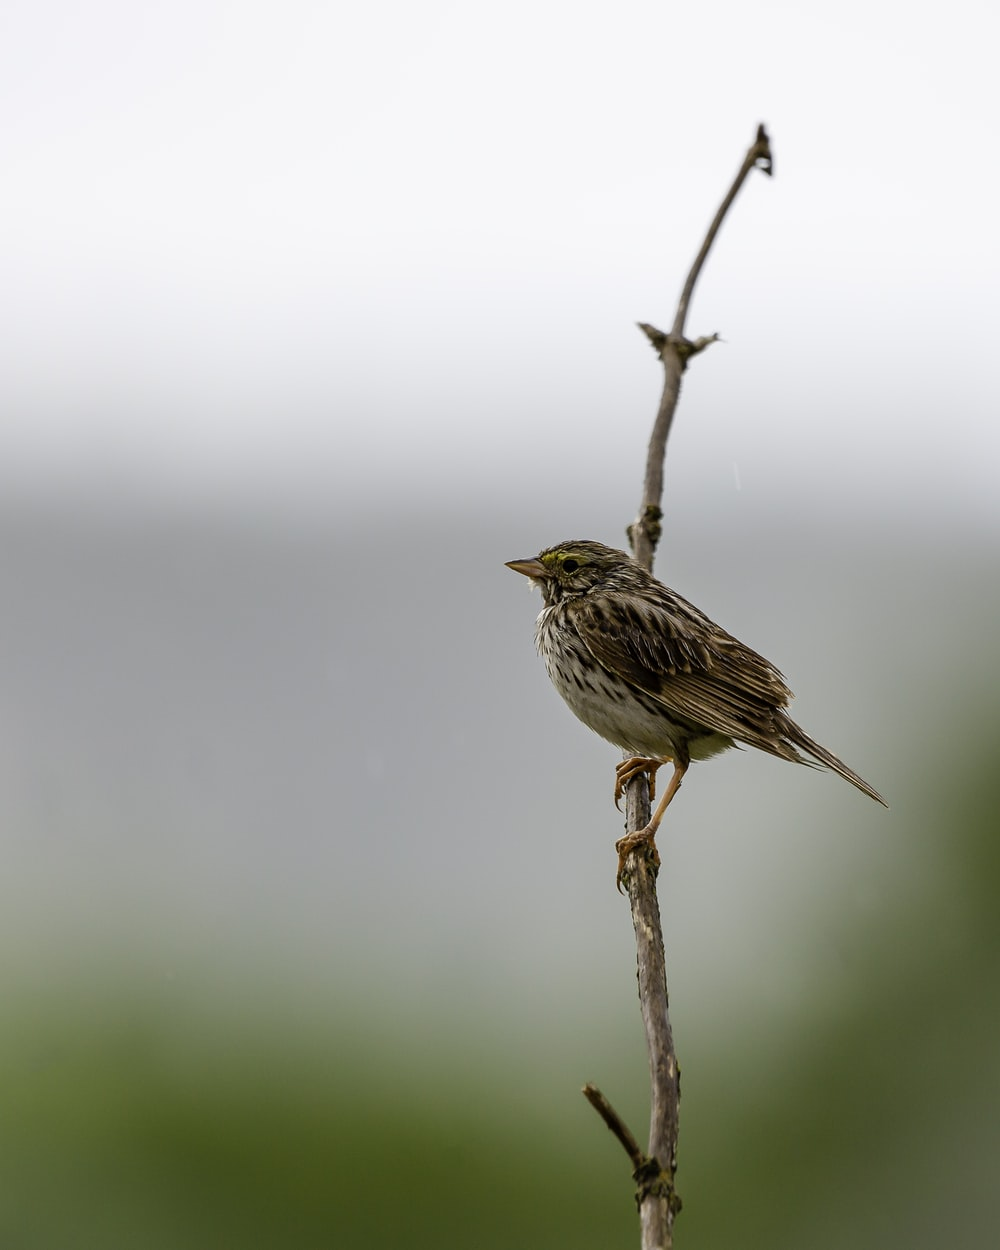 brown bird perched on brown tree branch